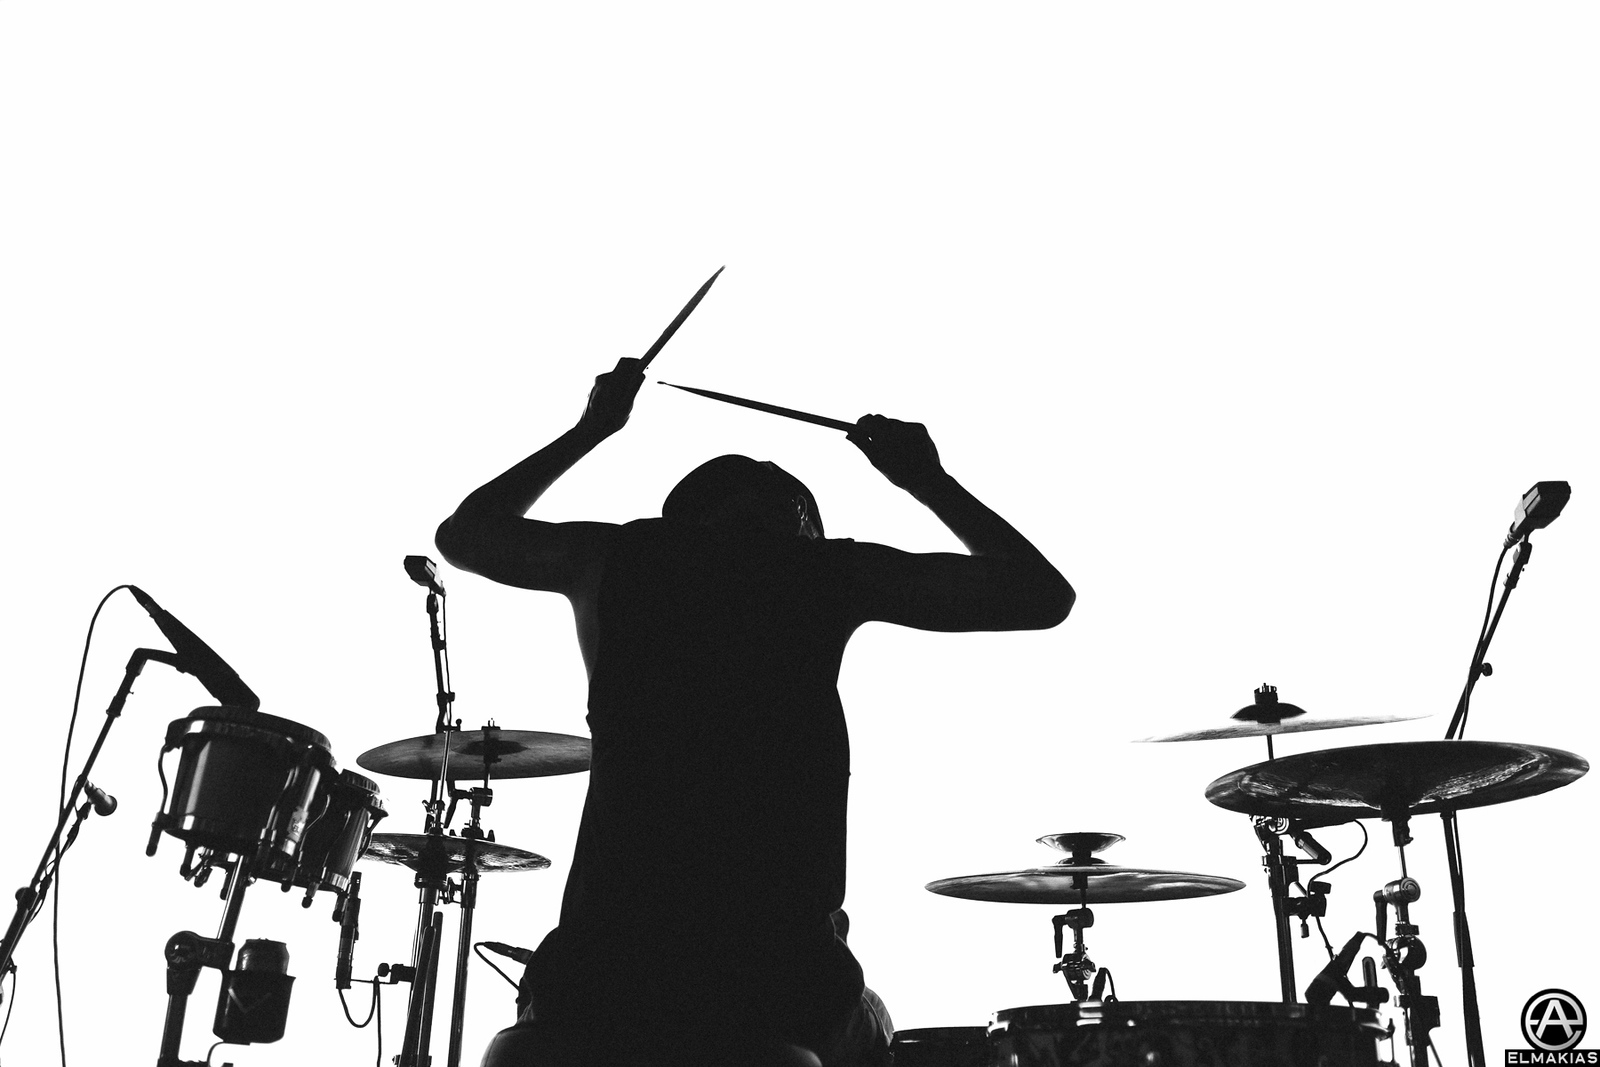 Mike Fuentes of Pierce the Veil's silhouette at Warped Tour 2015 by Adam Elmakias